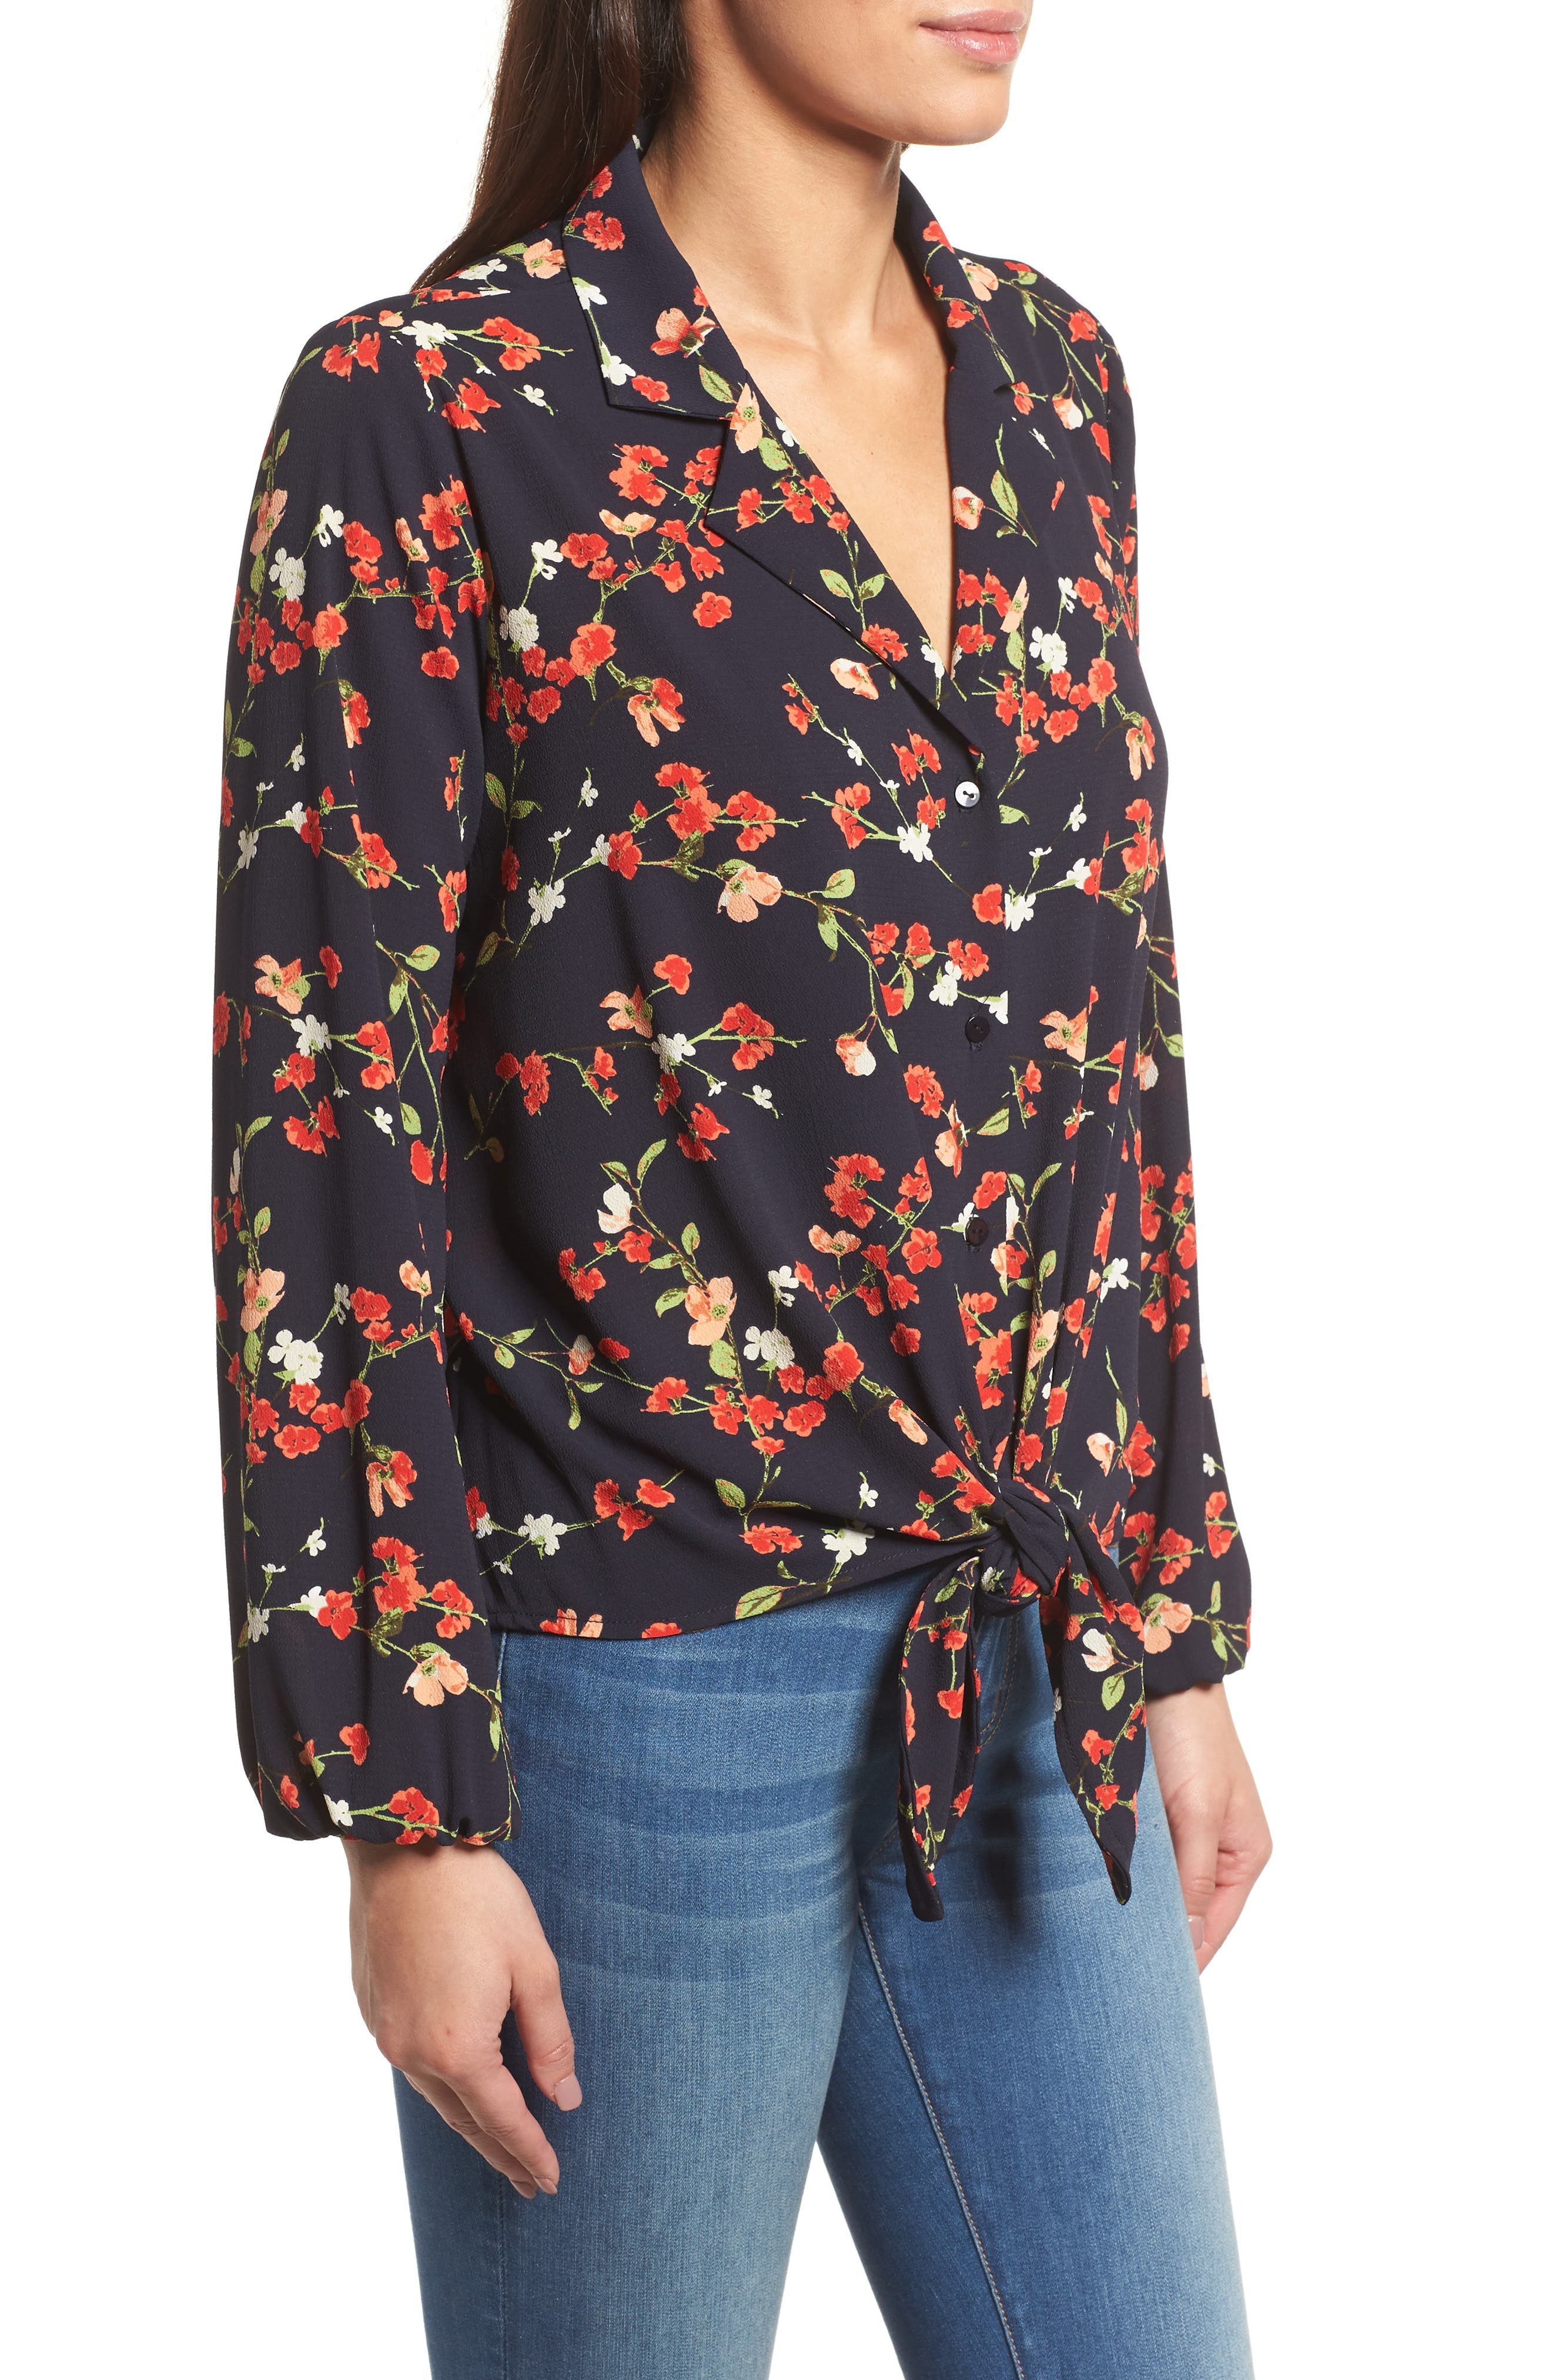 Relaxed Tie Front Top,                             Alternate thumbnail 3, color,                             Black Print With Red Flowers